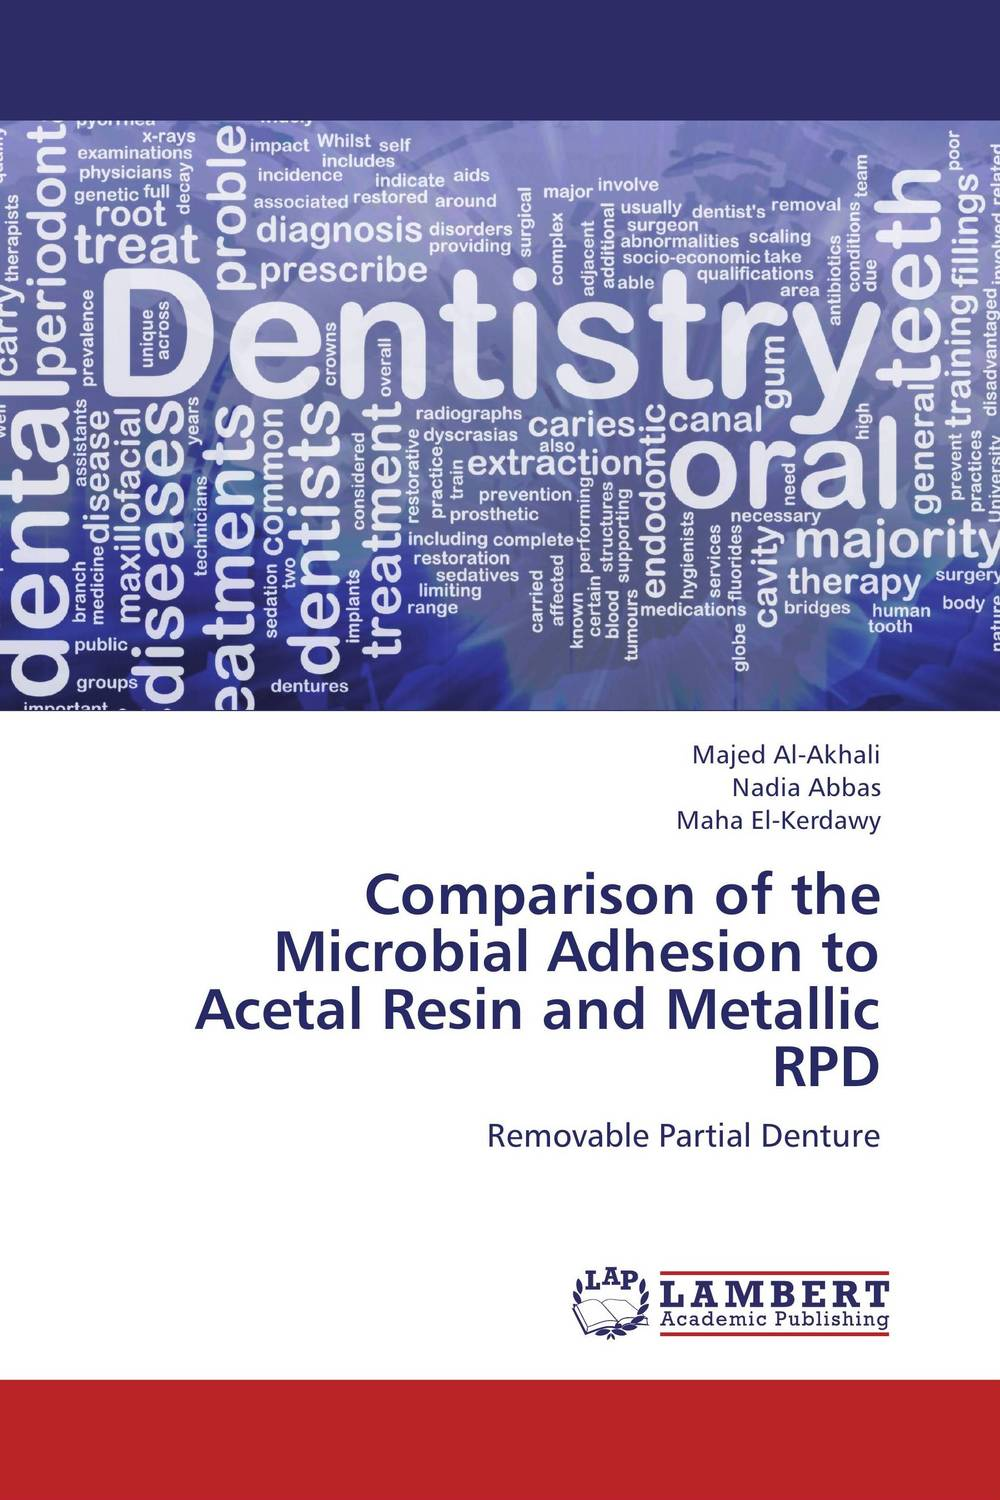 Comparison of the Microbial Adhesion to Acetal Resin and Metallic RPD